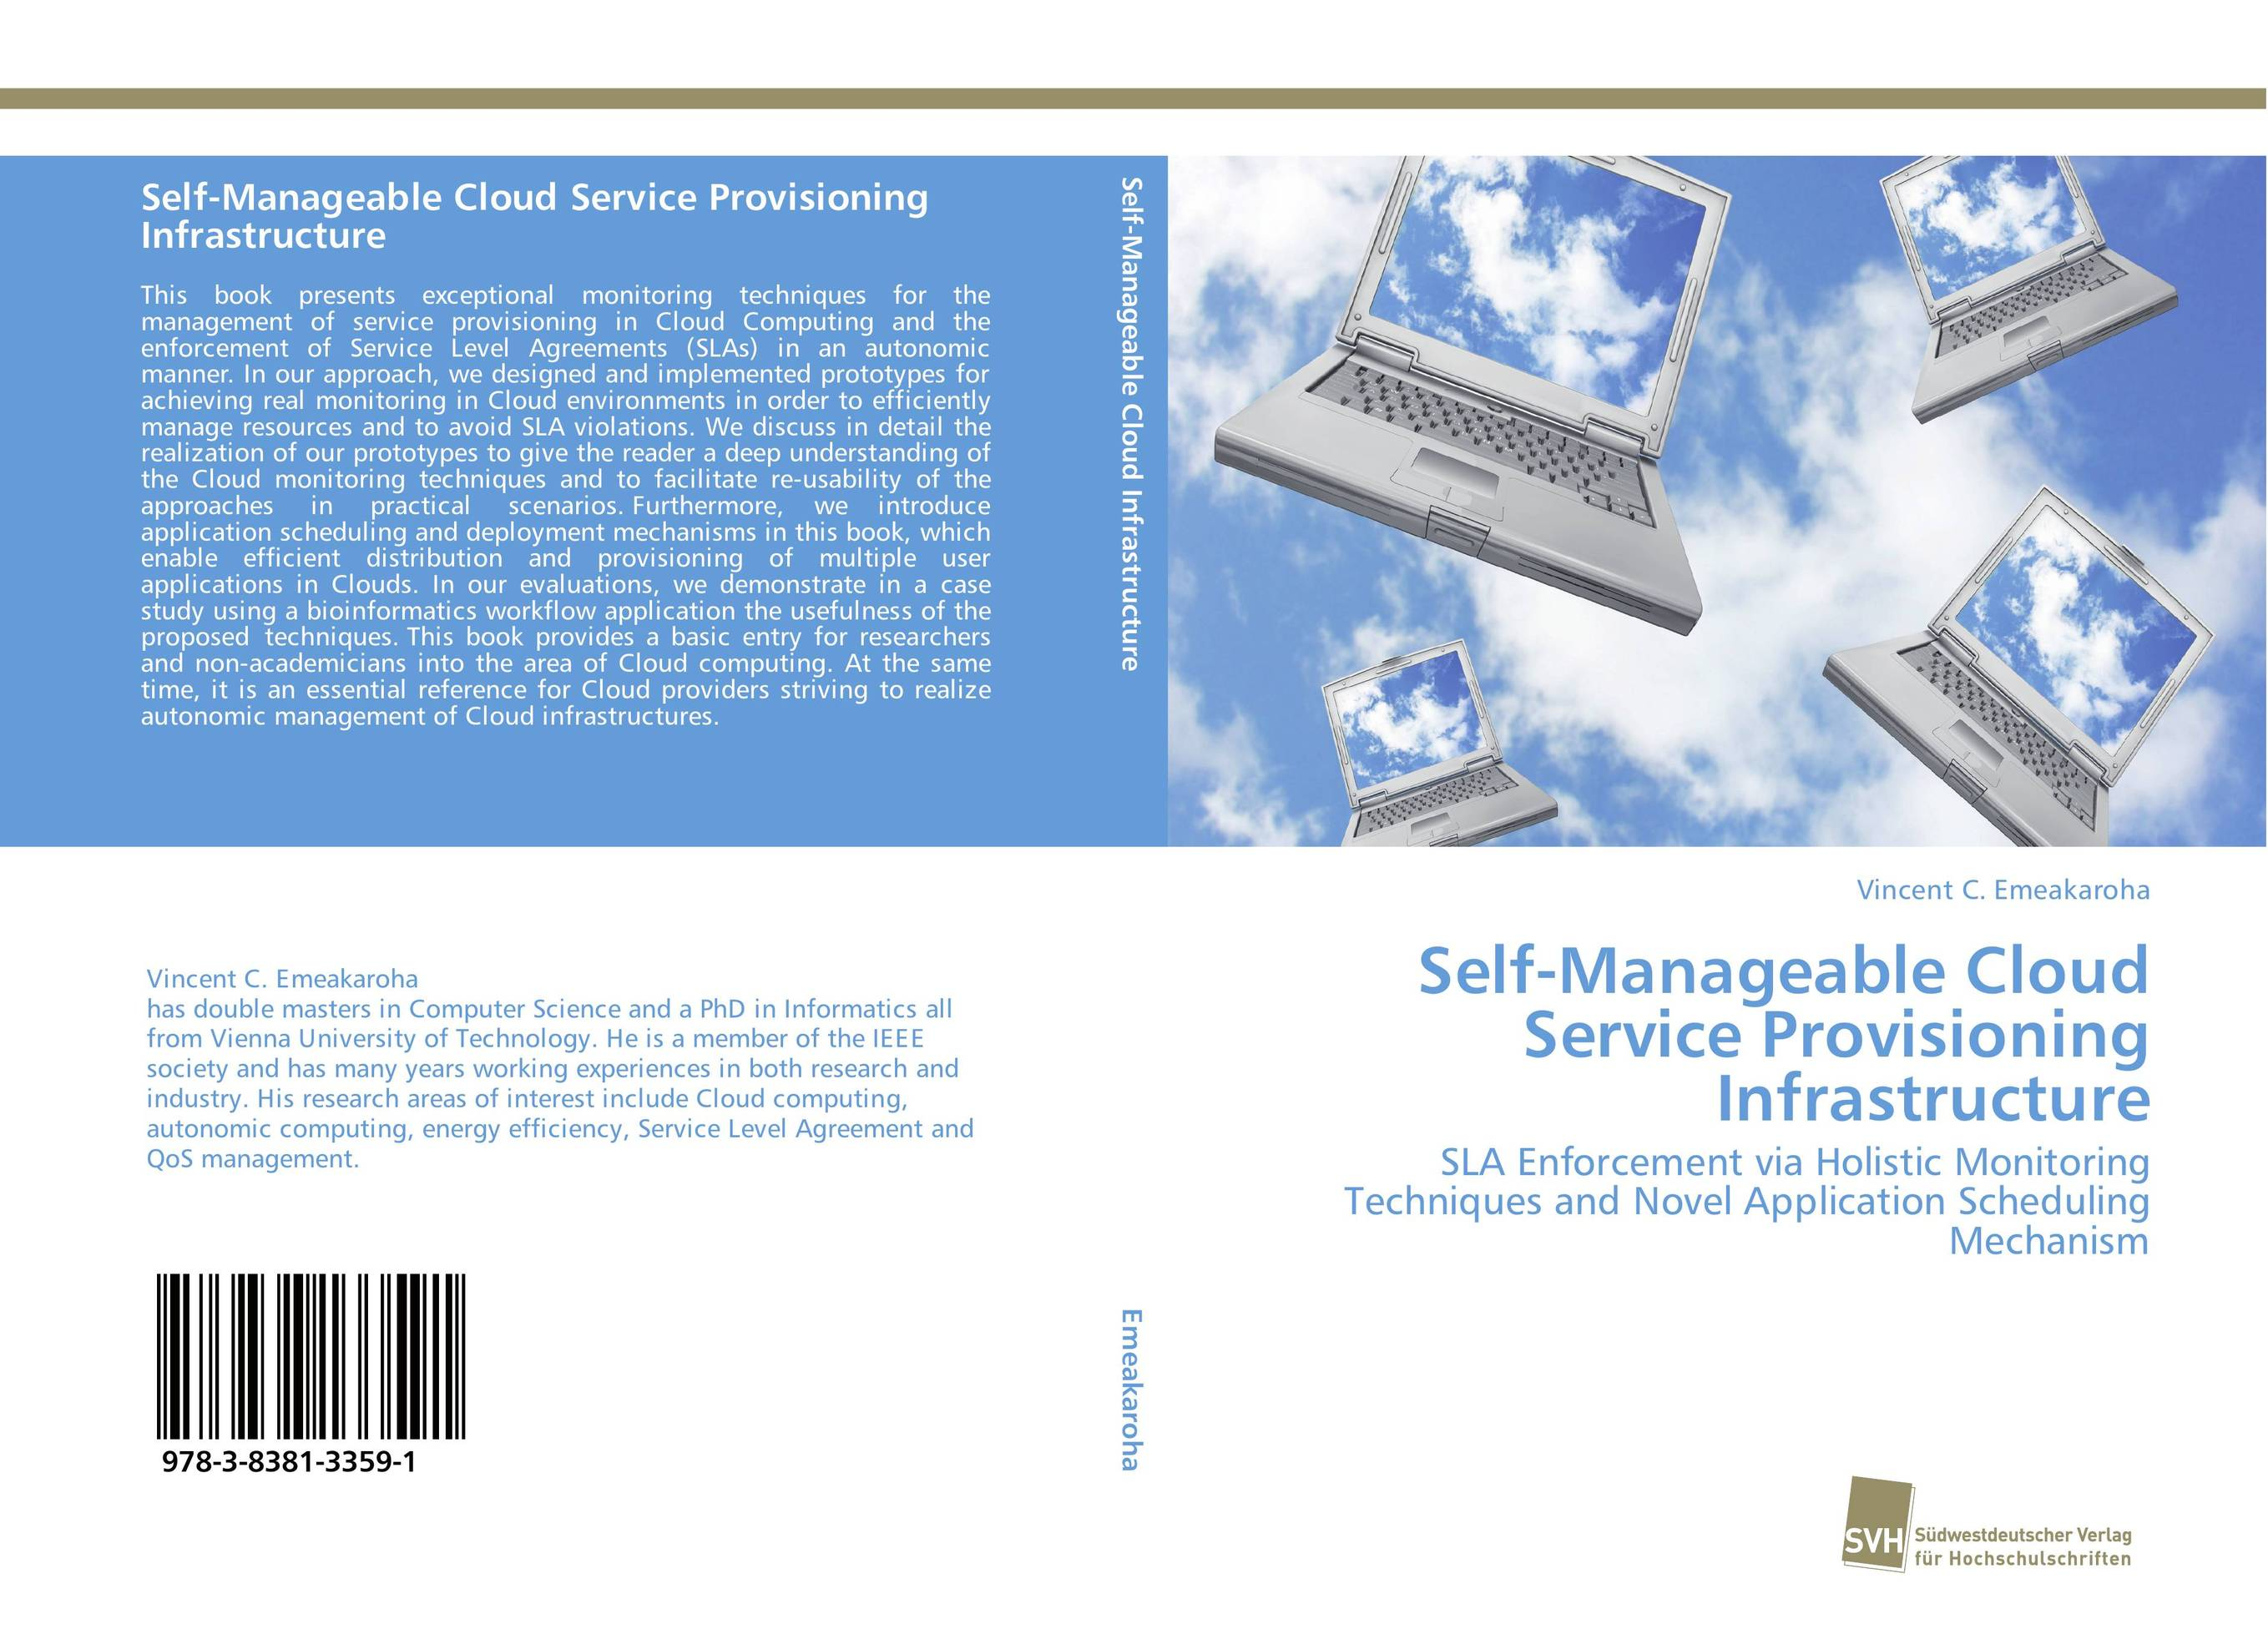 Self-Manageable Cloud Service Provisioning Infrastructure peter block stewardship choosing service over self interest